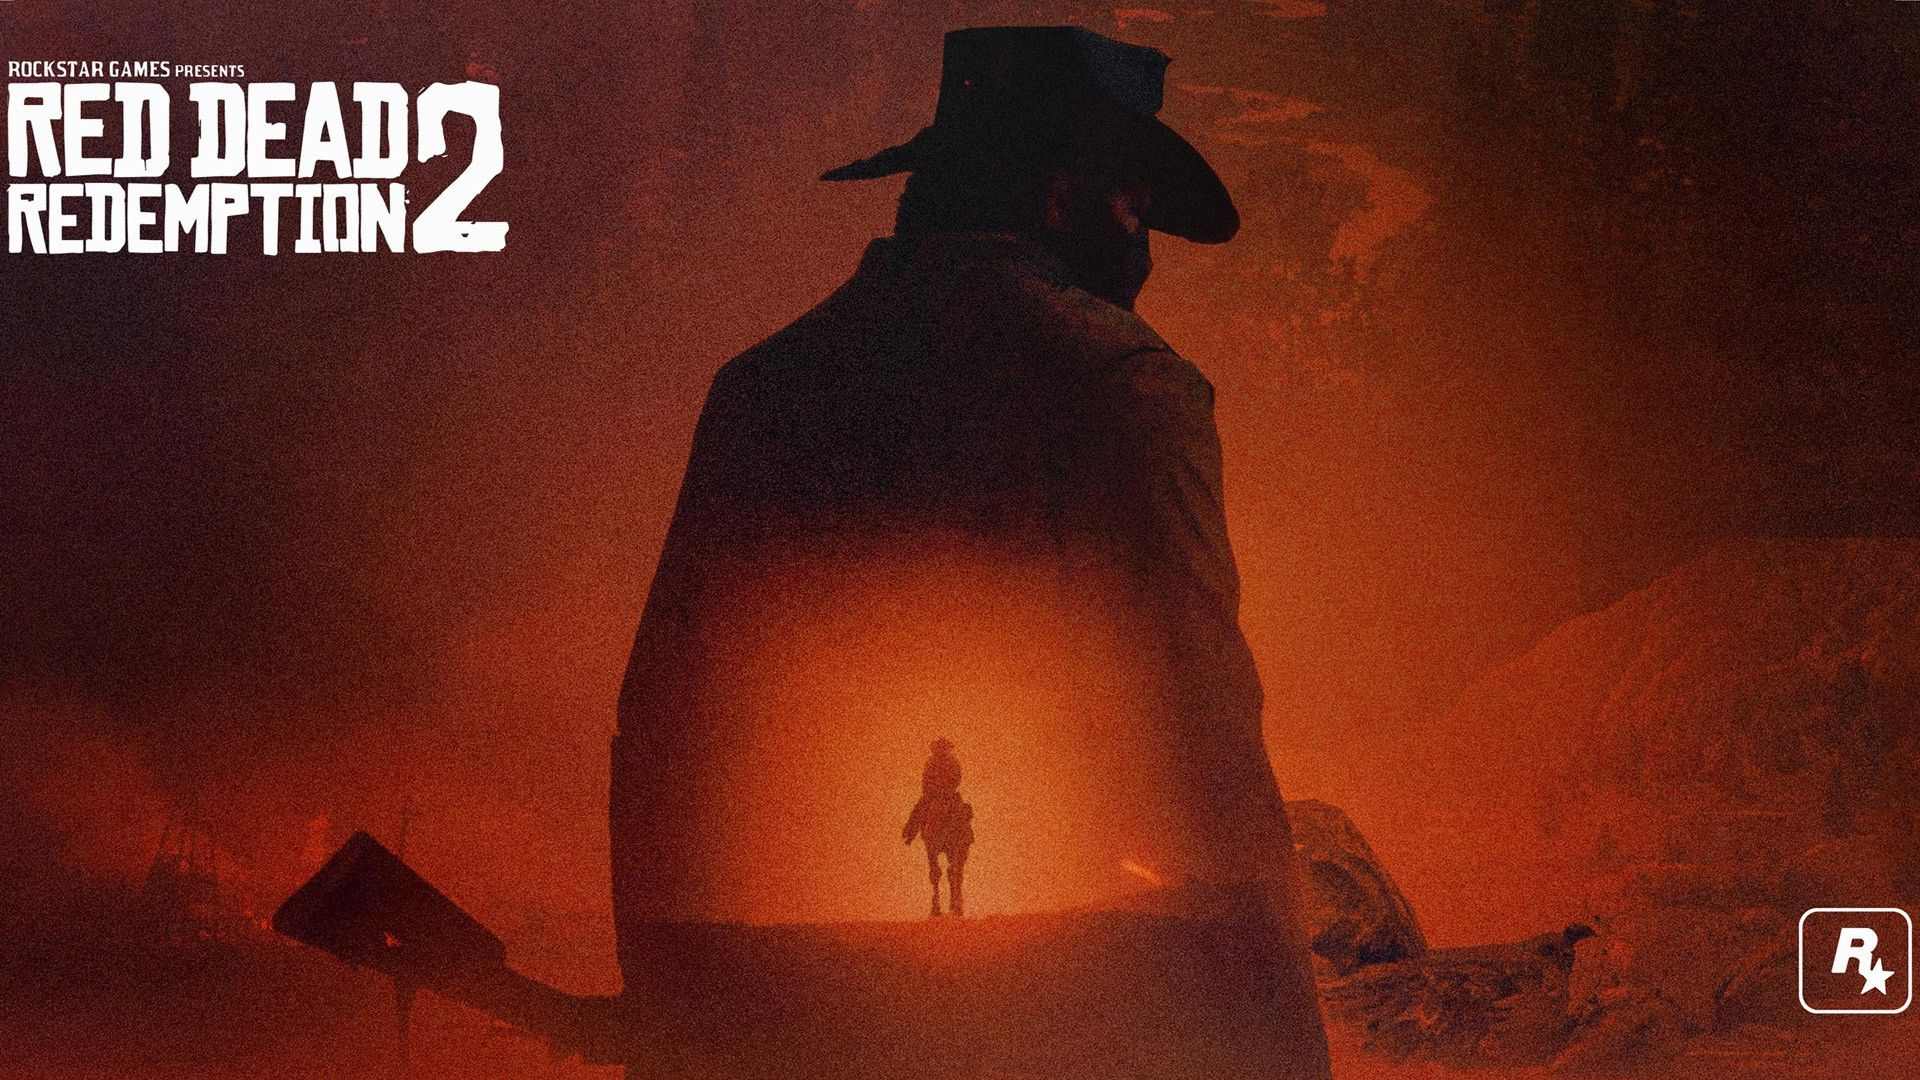 Red Dead Redemption 2 Wallpapers High Quality Red Dead Redemption Red Dead Redemption Ii Western Film